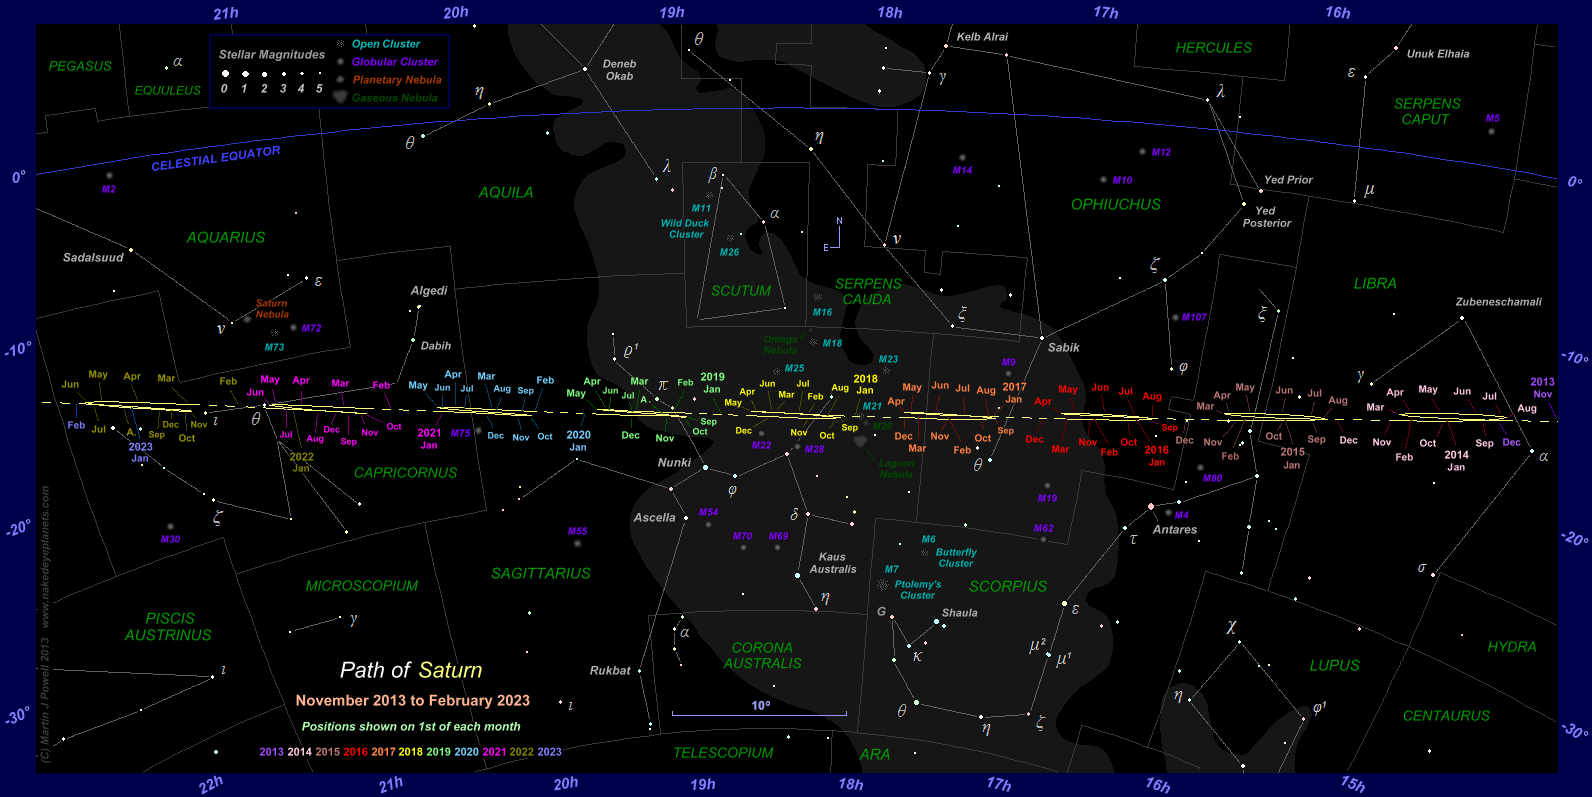 Where is Saturn tonight? This star chart shows the path of Saturn through the constellations of Libra, Scorpius, Ophiuchus, Sagittarius and Capricornus from 2014 to 2022 (Copyright Martin J Powell 2013)